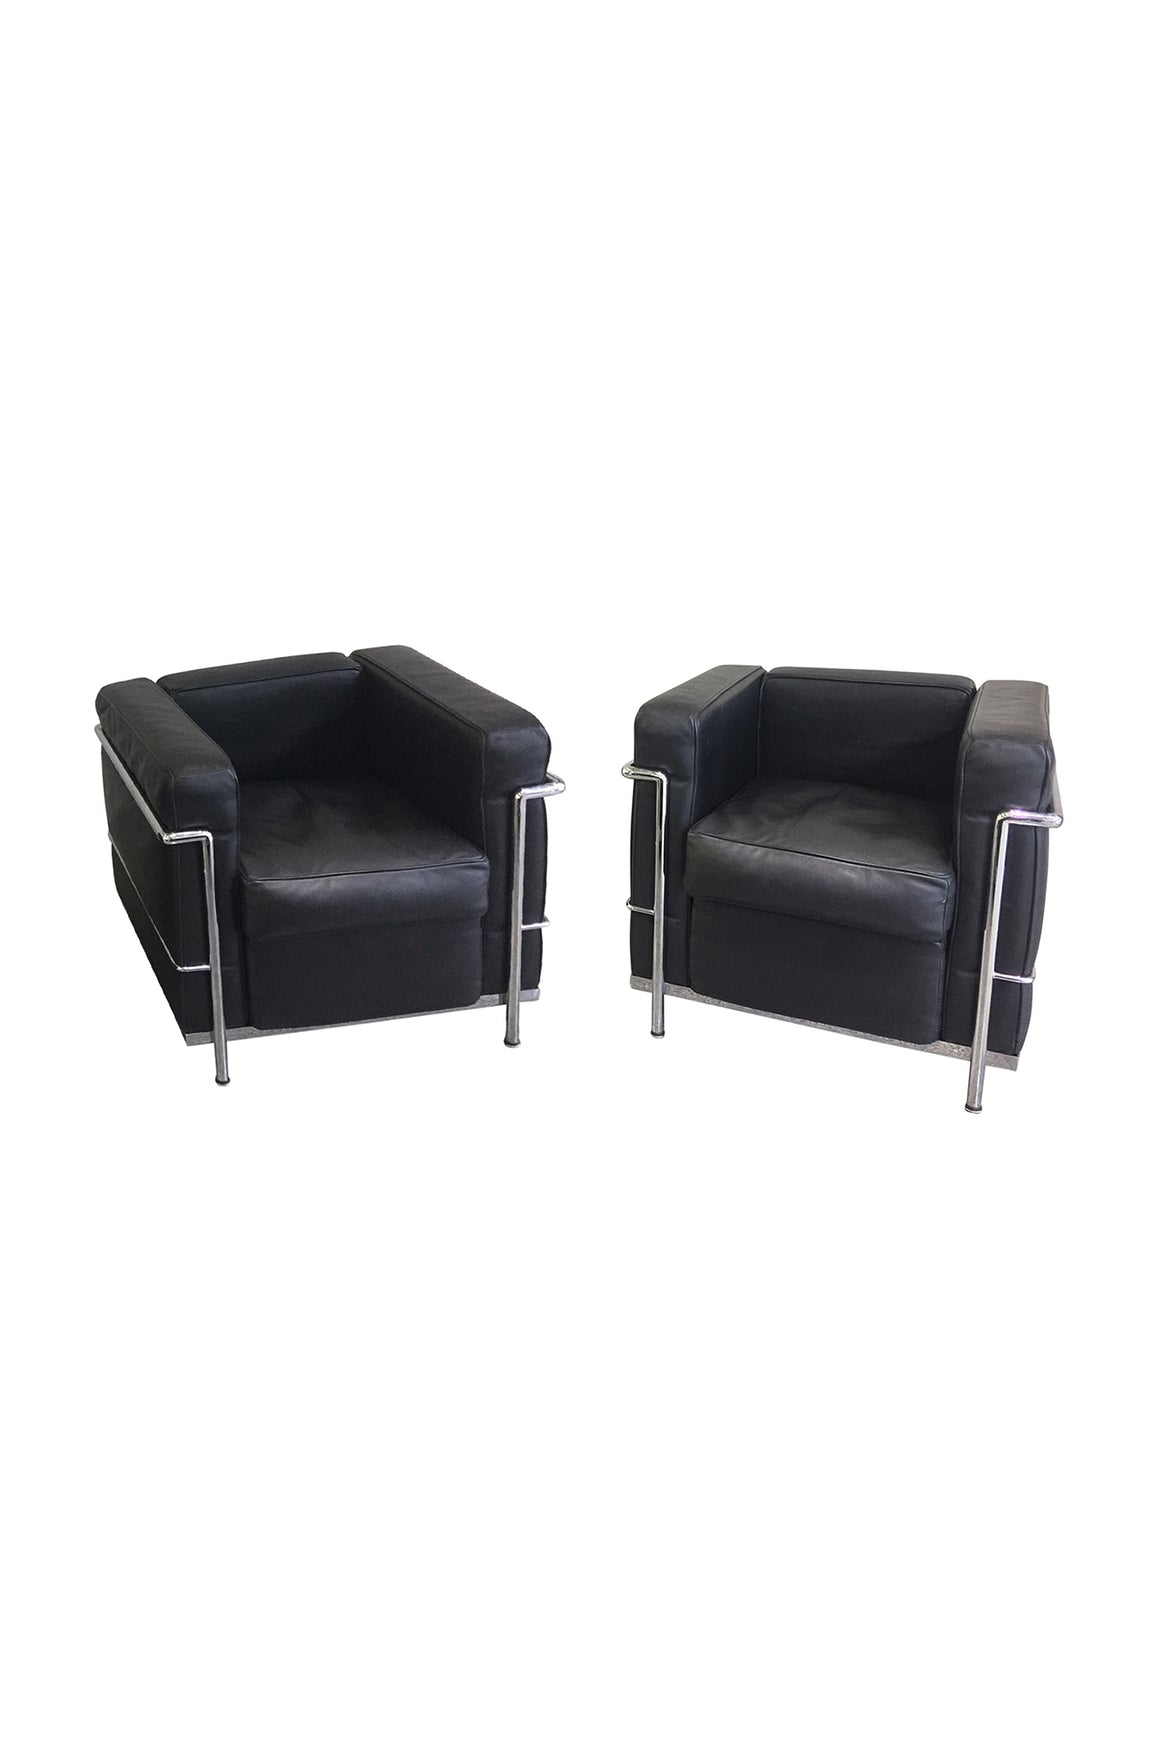 Pair of 20th Century Corbusier Style Black Leather Club Chairs